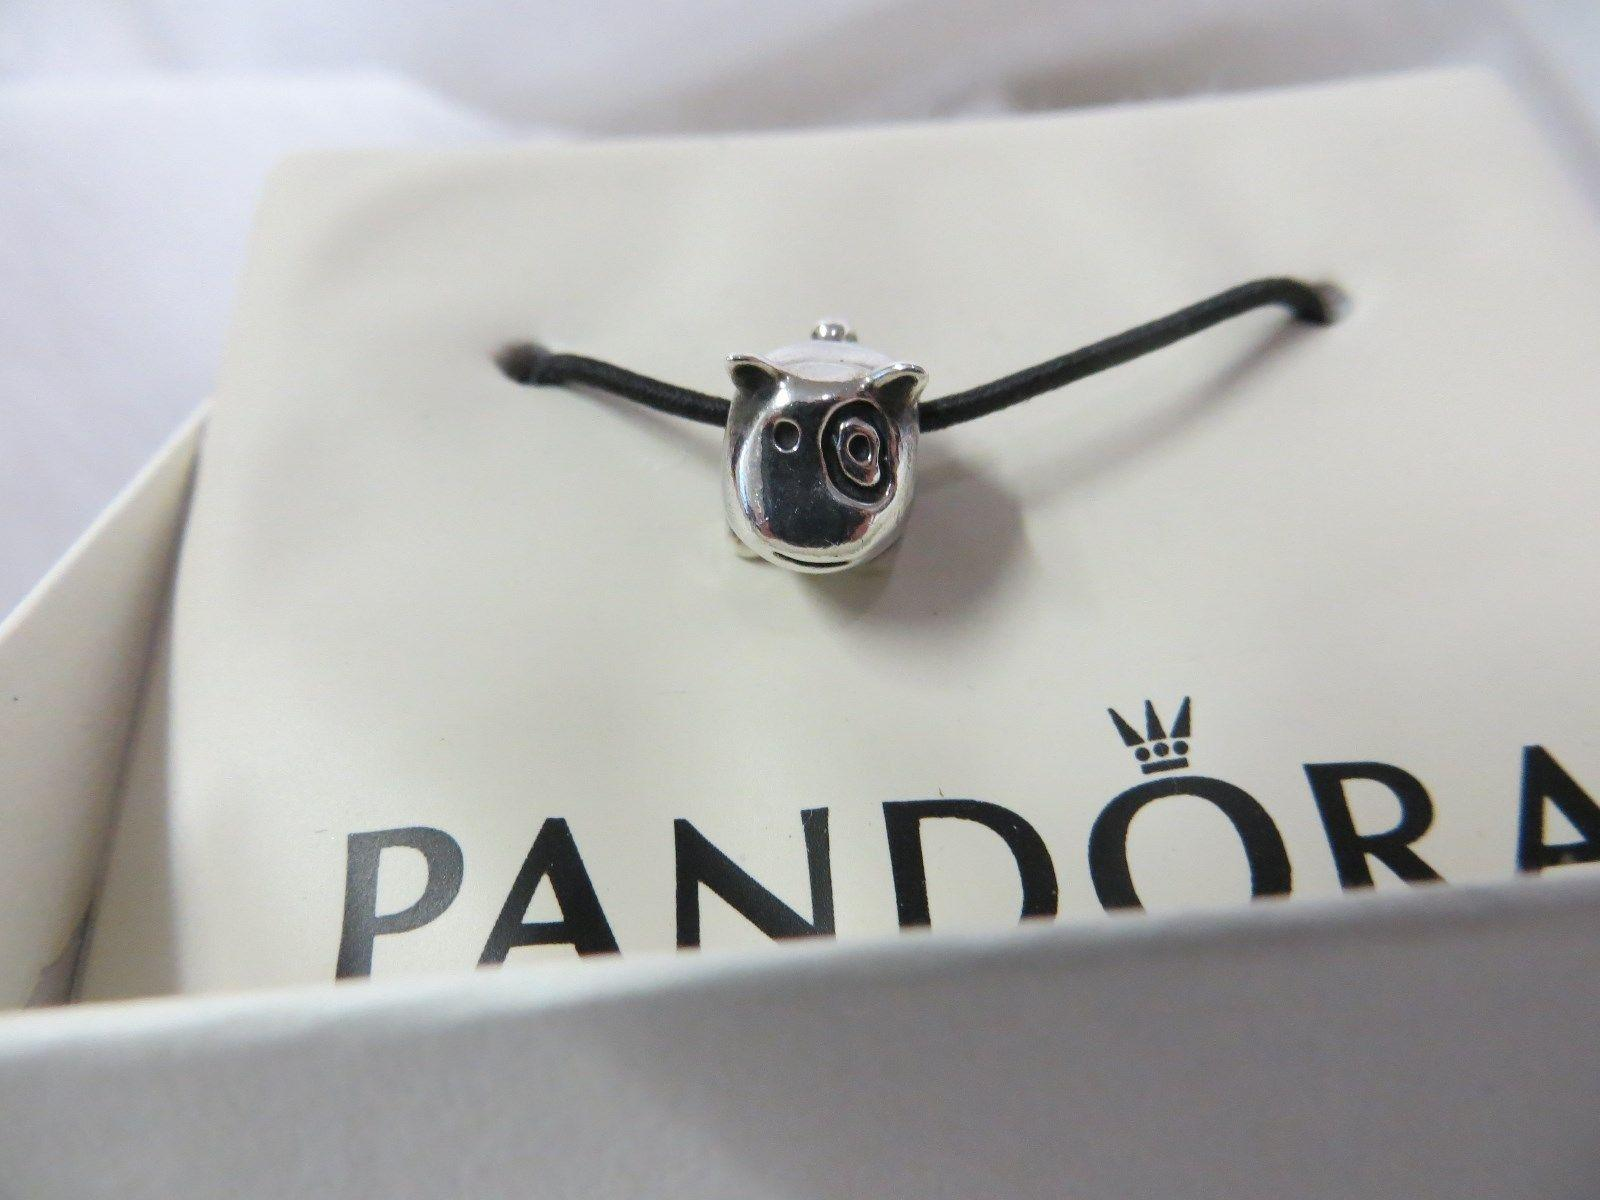 20975d954 123456 c087a 9179e; cheap pandora authentic pandora see spot run dog charm  790258 retired. 123456 c087a 9179e